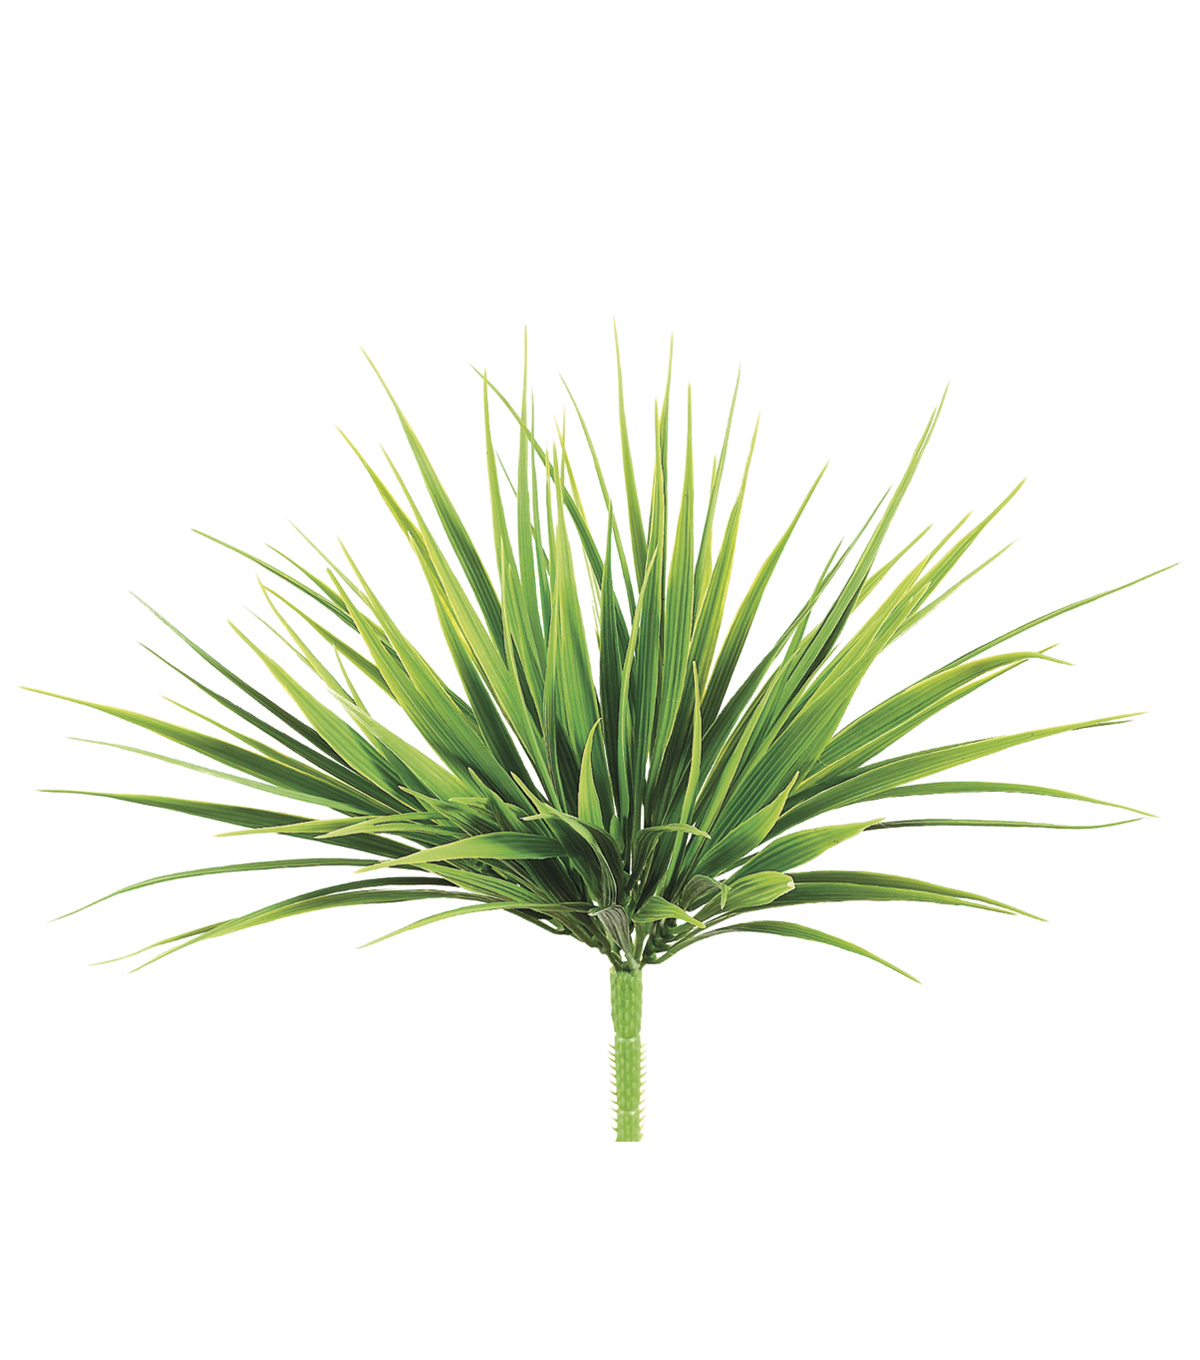 12\u0022 Vanilla Grass Bush with 98 Lvs. Two Tone Green